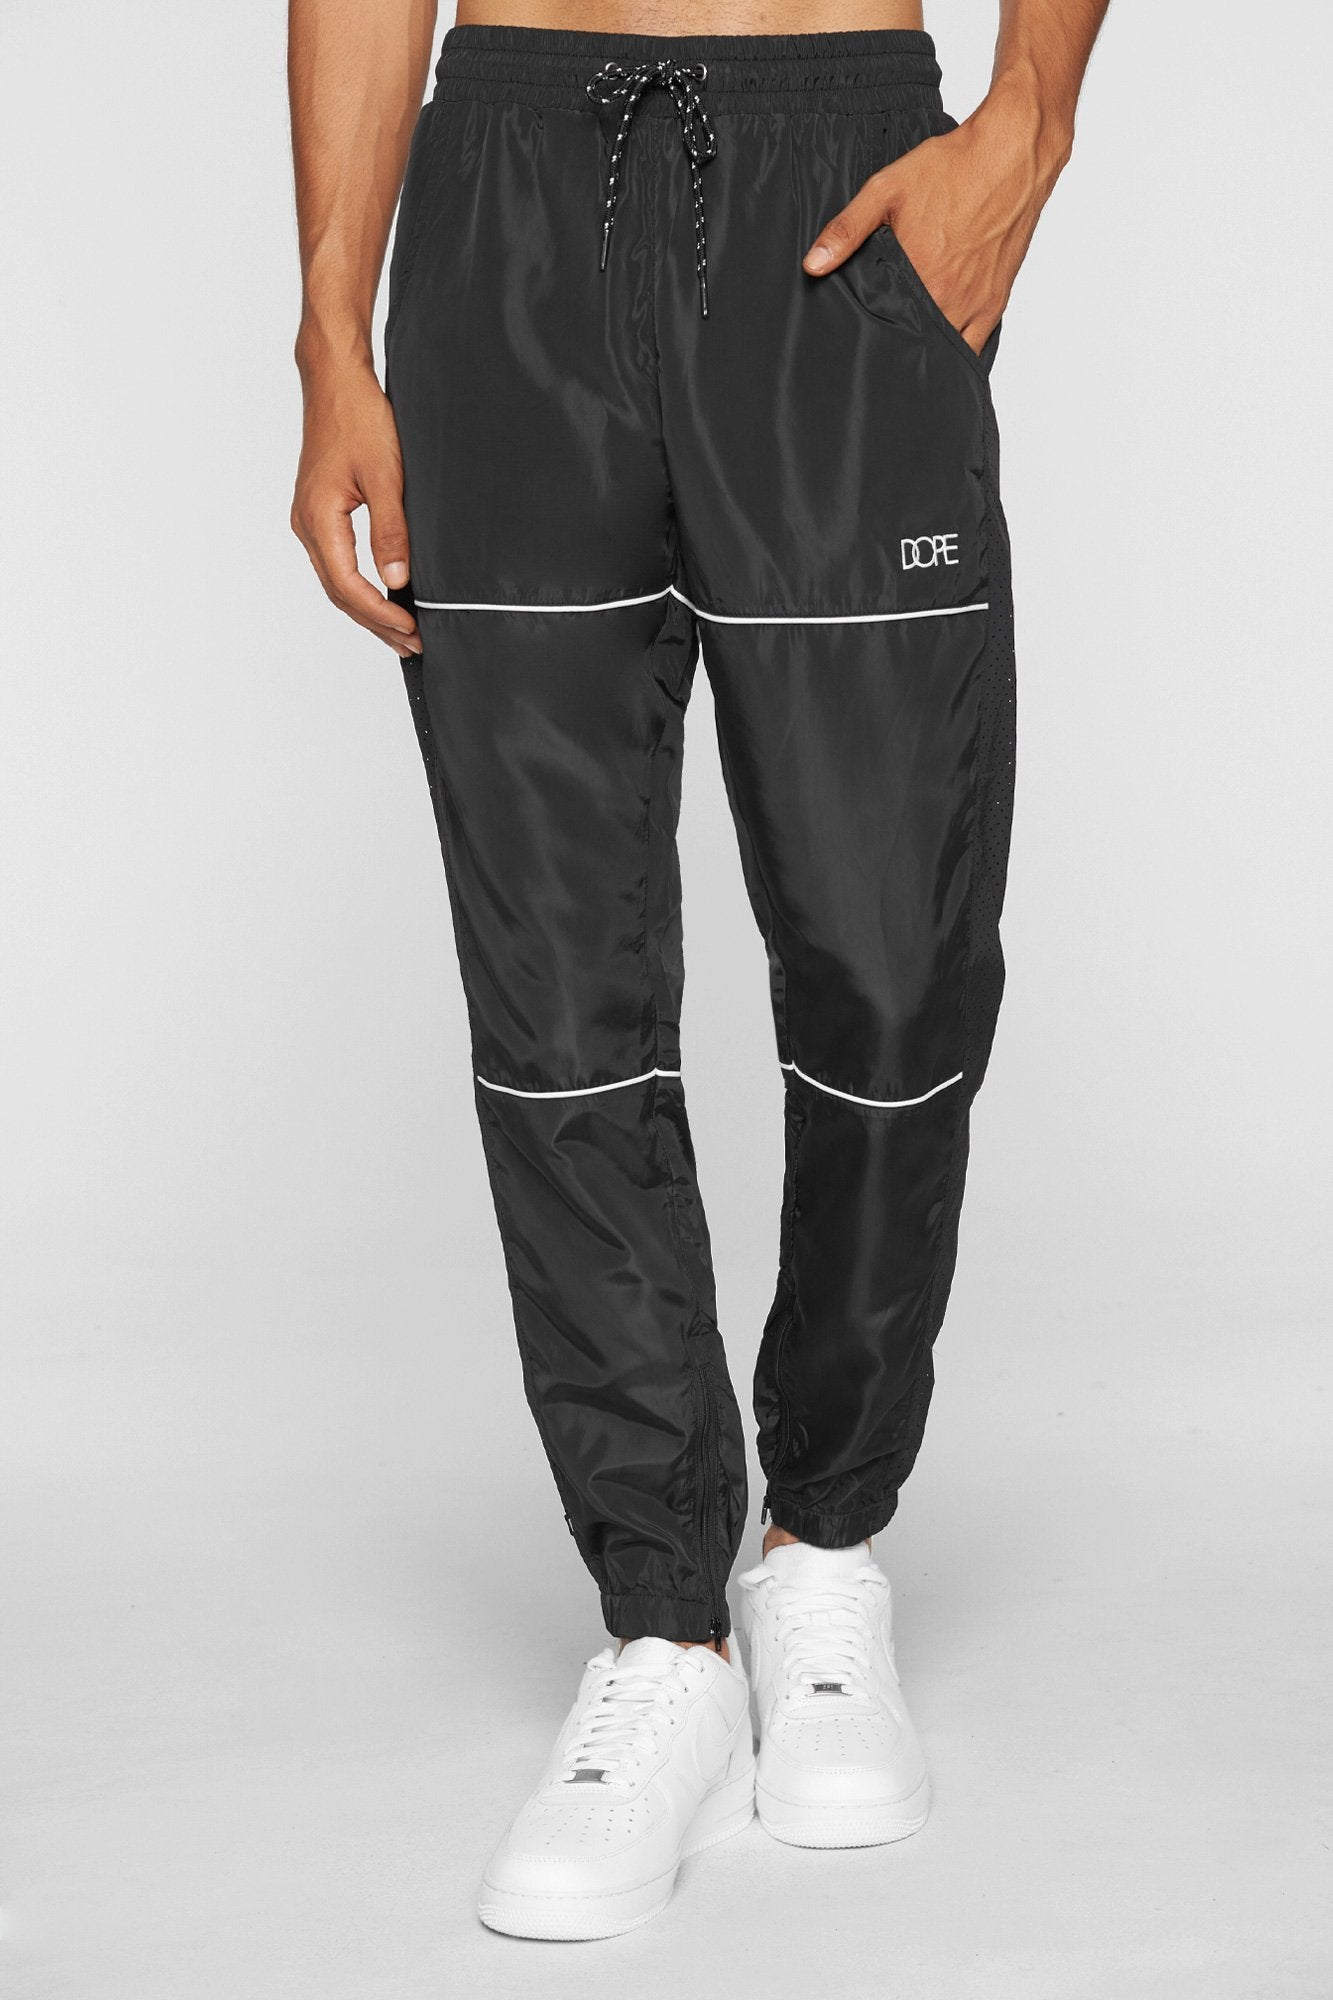 DOPE Soft-Tek Perforated Joggers #Black